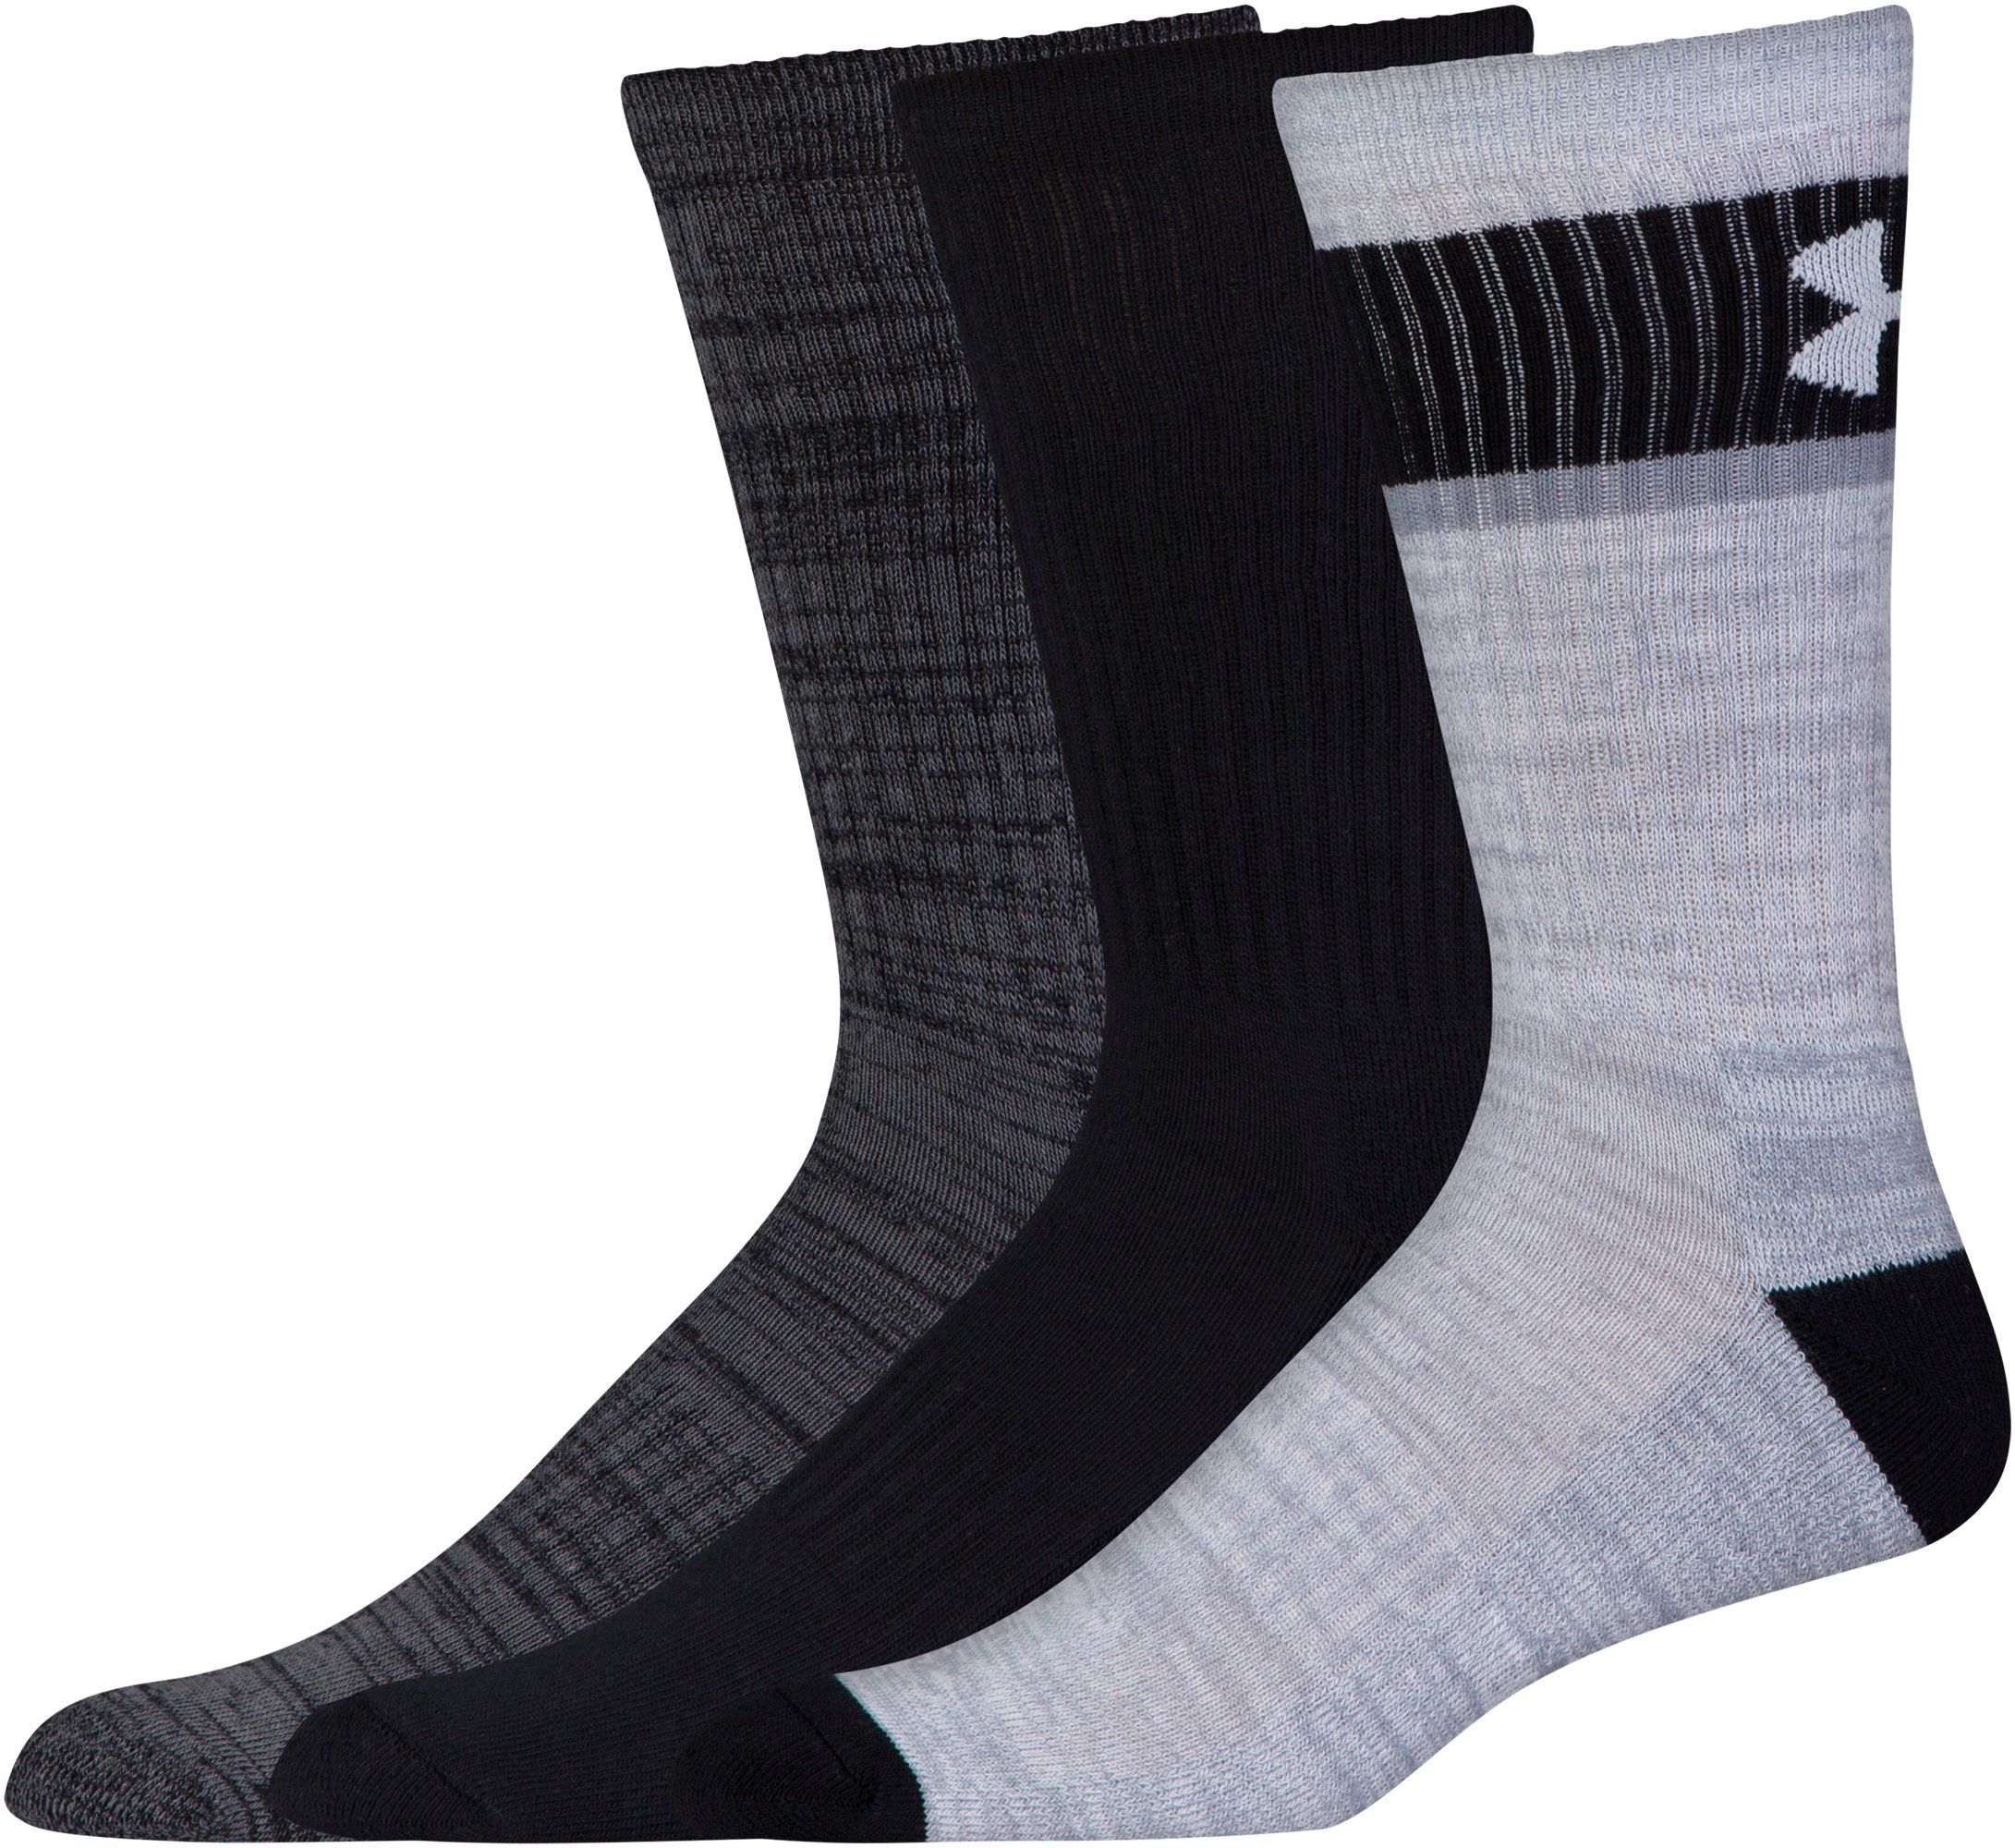 Men's UA Twisted 2.0 Crew Socks - 3 Pack , Black